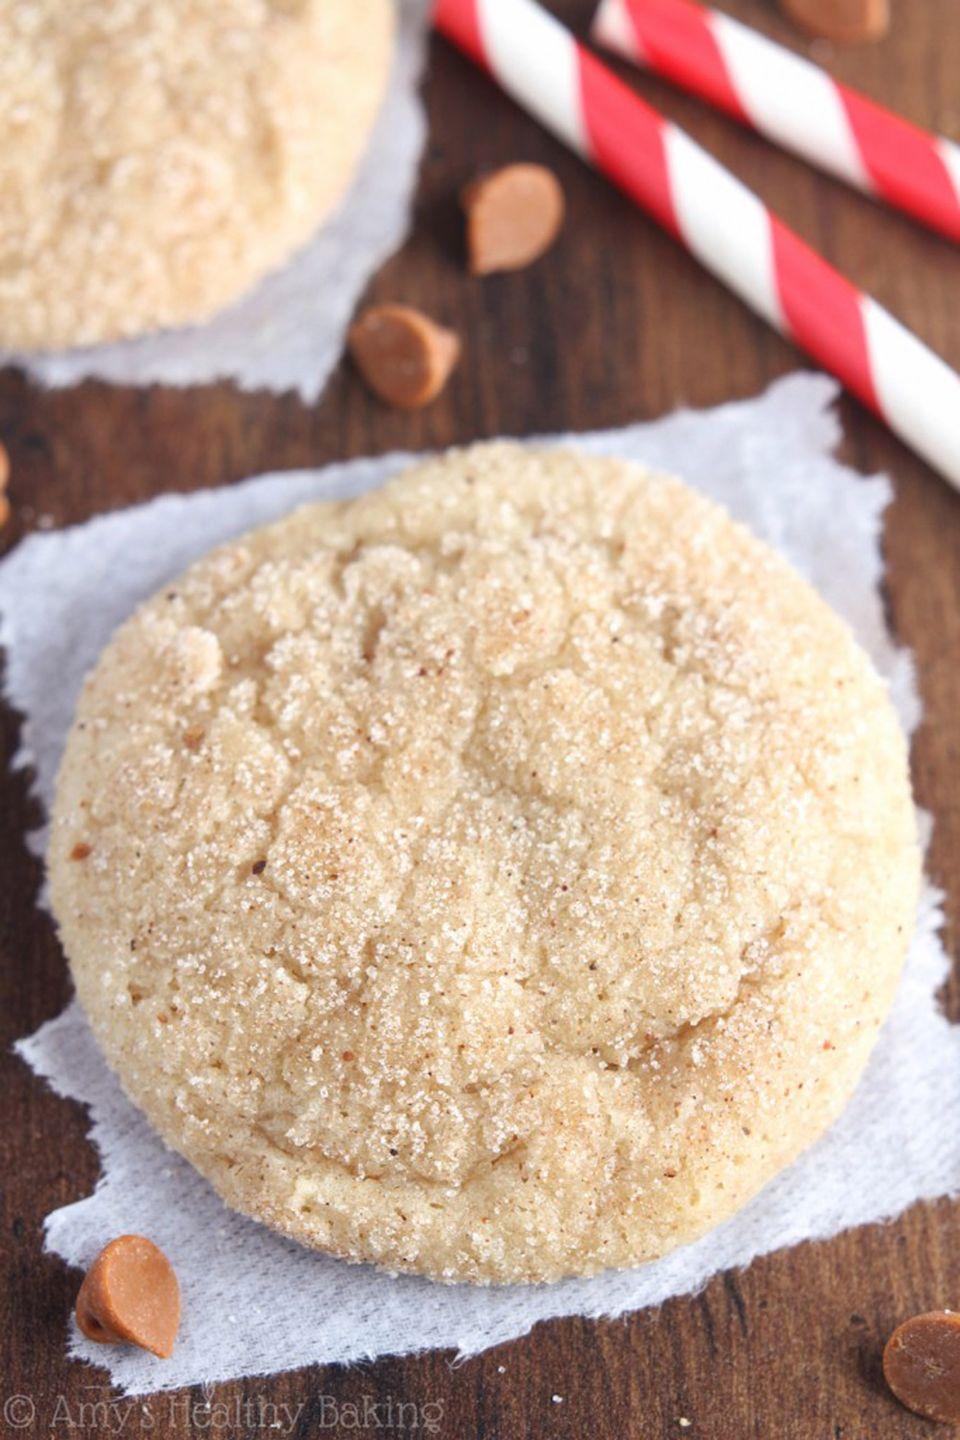 """<p>Even if you're not a fan of the drink, you won't be able to resist these eggnog-spiced snickerdoodles. </p><p><strong>Get the recipe at <a href=""""https://amyshealthybaking.com/blog/2014/12/08/eggnog-snickerdoodles/"""" rel=""""nofollow noopener"""" target=""""_blank"""" data-ylk=""""slk:Amy's Healthy Baking"""" class=""""link rapid-noclick-resp"""">Amy's Healthy Baking</a>.</strong></p><p><a class=""""link rapid-noclick-resp"""" href=""""https://www.amazon.com/gp/product/B0000CDVD2?tag=syn-yahoo-20&ascsubtag=%5Bartid%7C10050.g.647%5Bsrc%7Cyahoo-us"""" rel=""""nofollow noopener"""" target=""""_blank"""" data-ylk=""""slk:SHOP COOKIE SCOOPS"""">SHOP COOKIE SCOOPS</a></p>"""